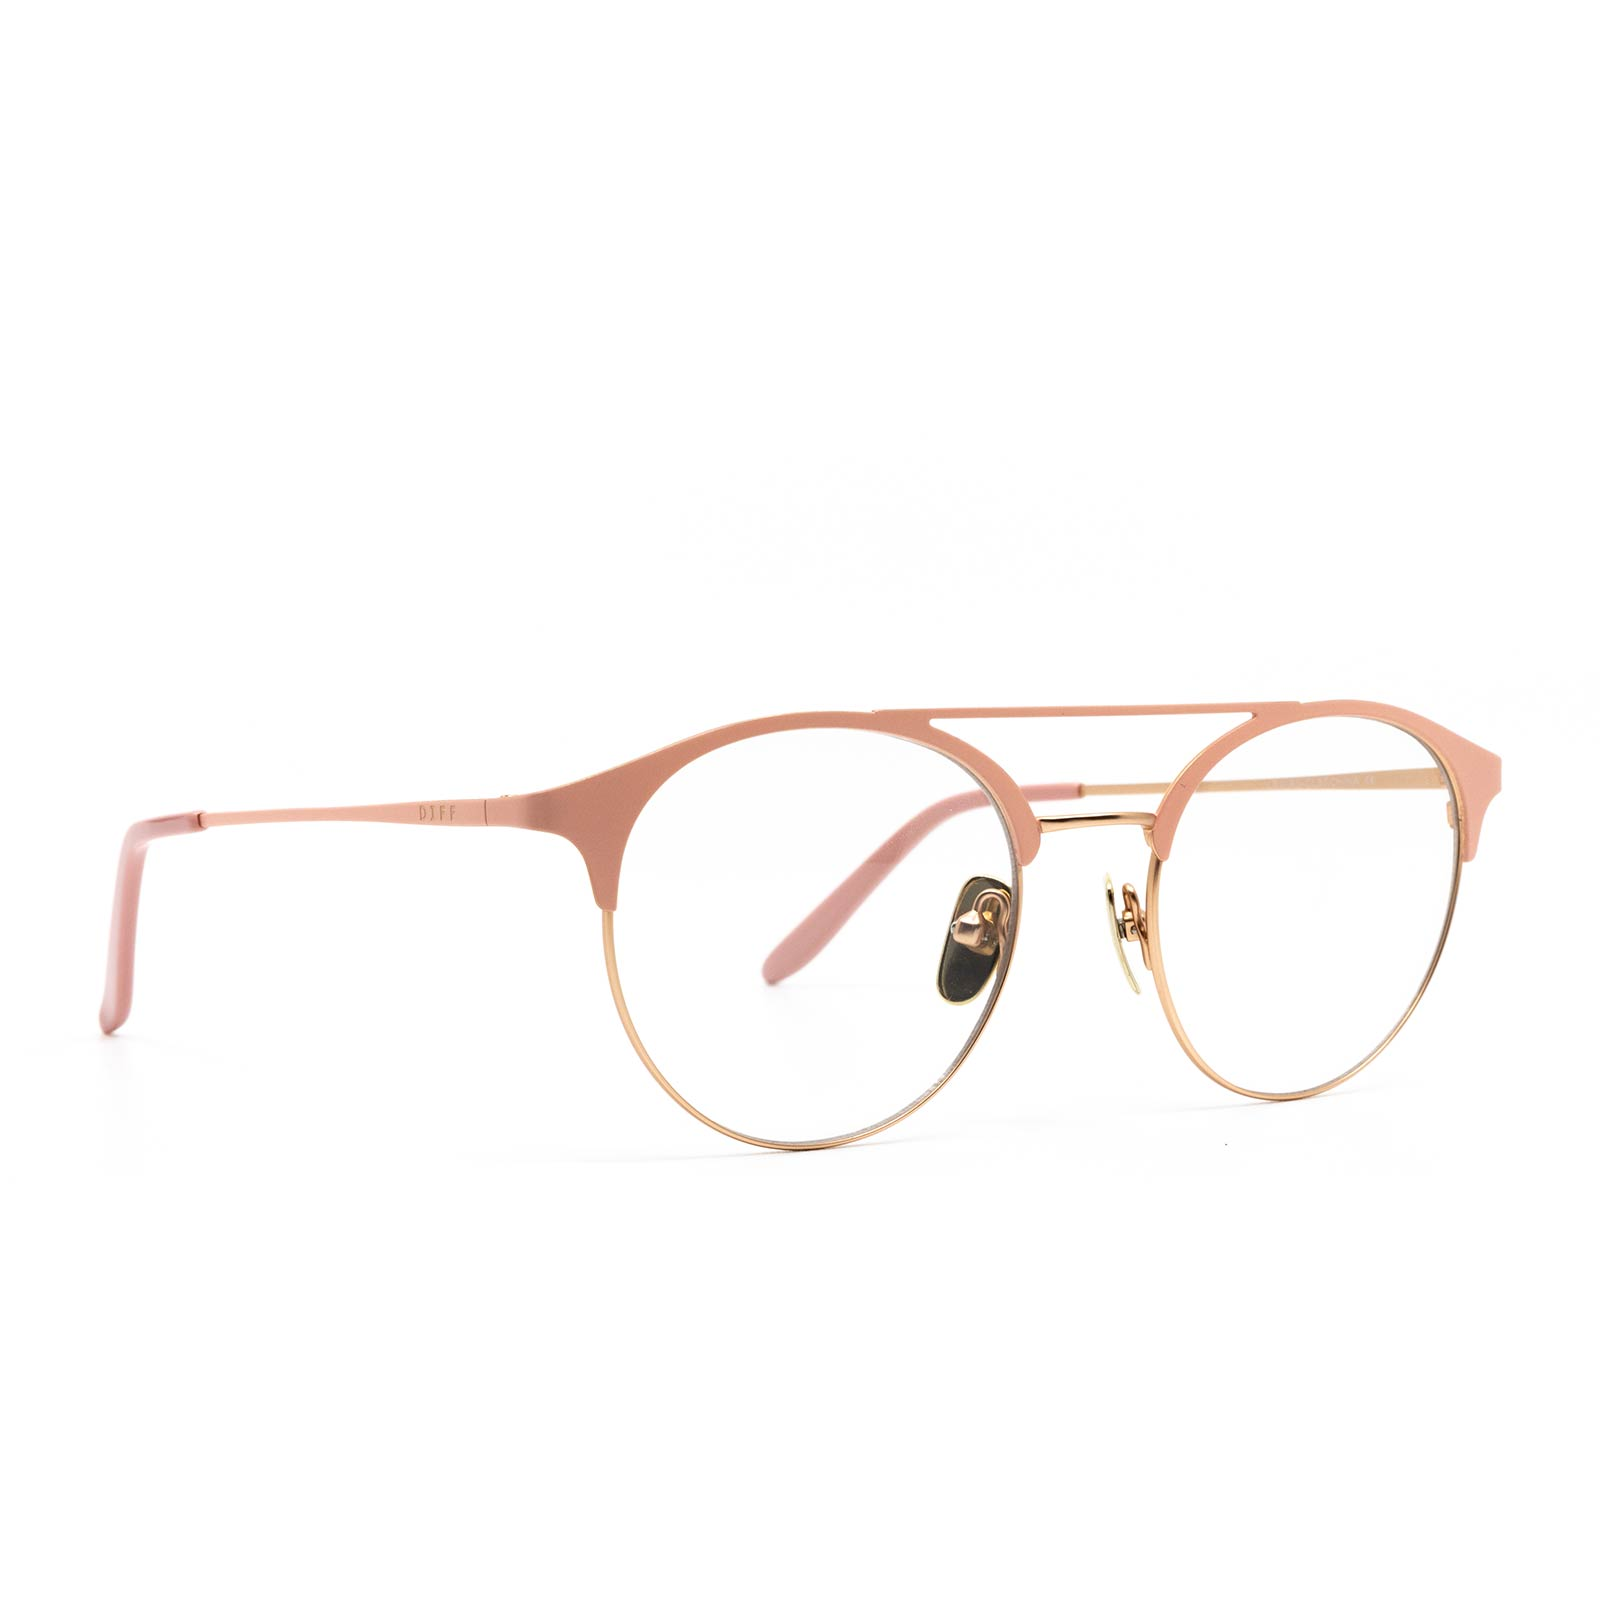 LEXI - ROSE GOLD + BLUSH PINK + CLEAR